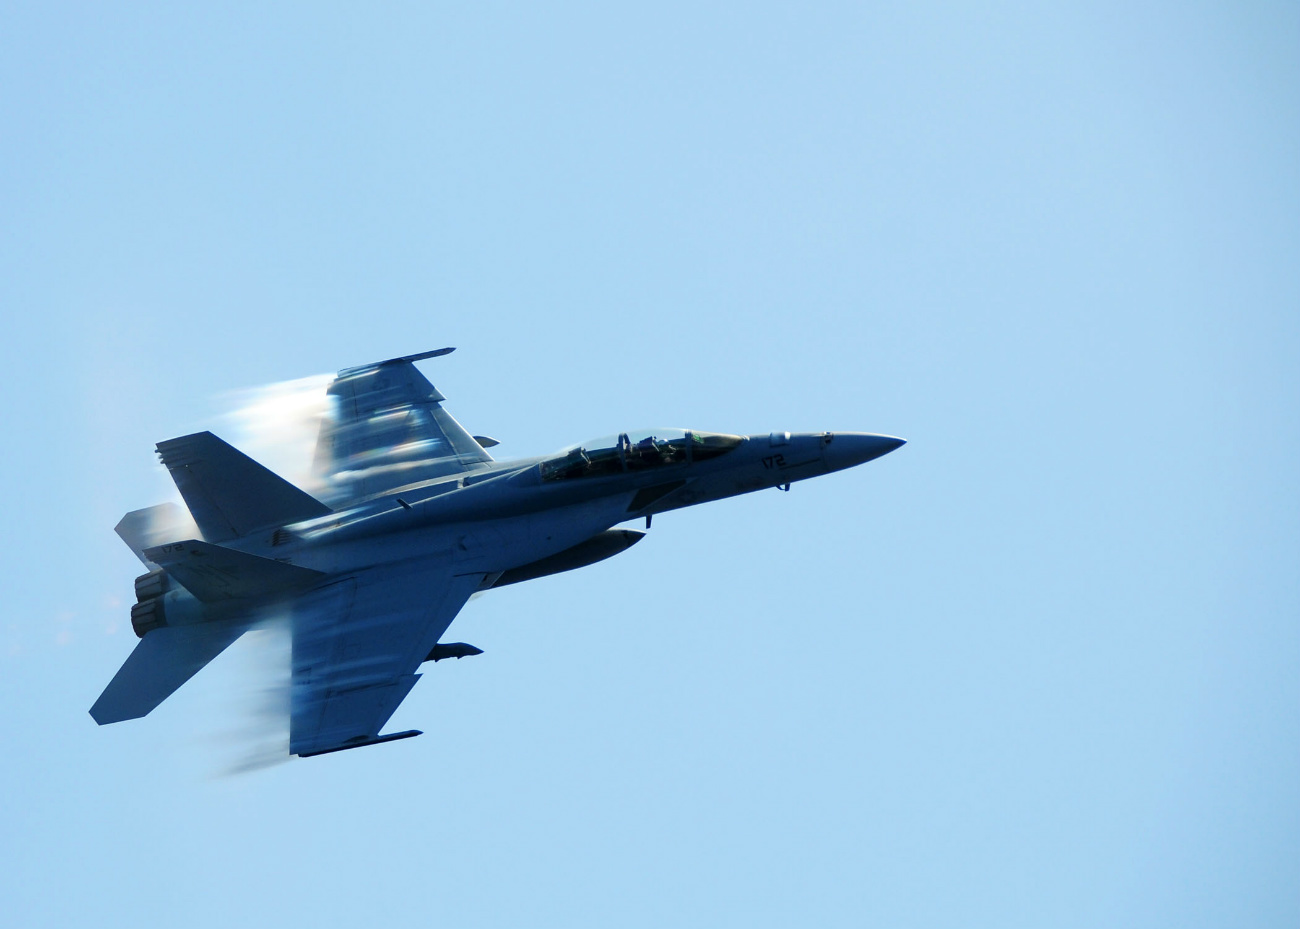 Sound Barrier Breaking Images, FA-18F Super Hornet breaks the sound barrier during a fly-by of USS Ronald Reagan